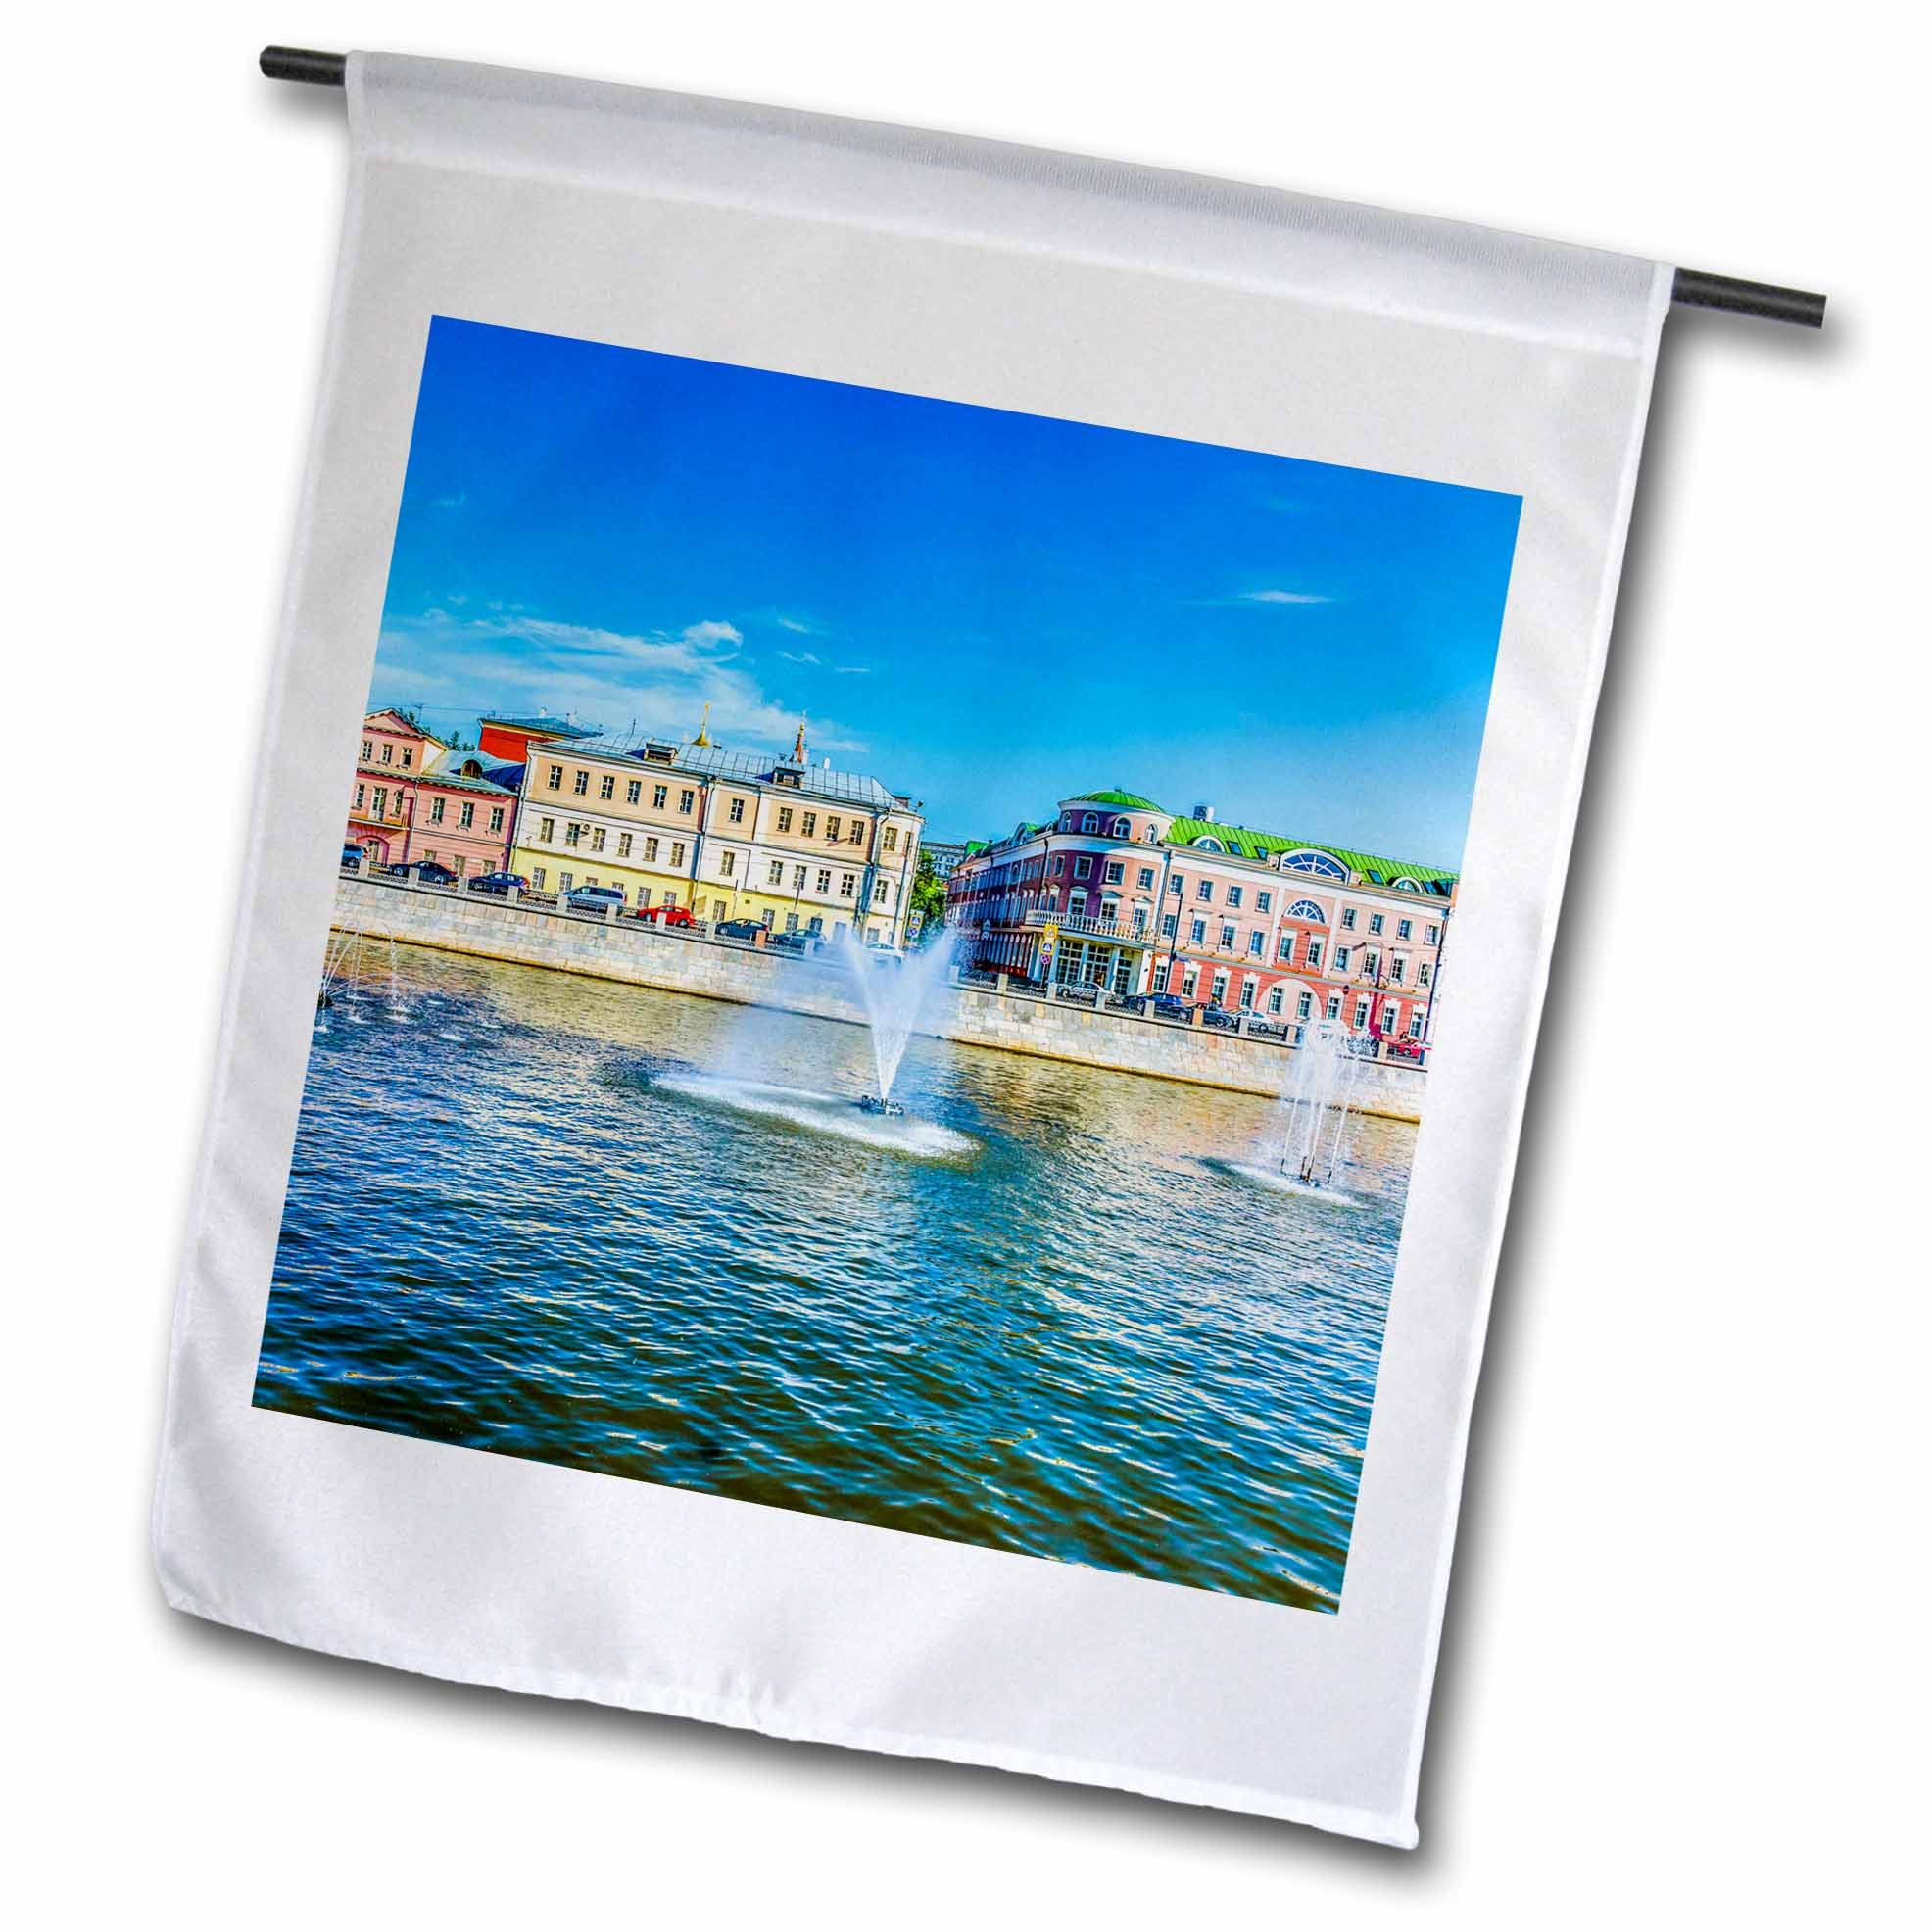 3dRose Alexis Photography - Moscow City - Bypass canal of the Moscow river, fountains and historic buildings - 18 x 27 inch Garden Flag (fl_270798_2)